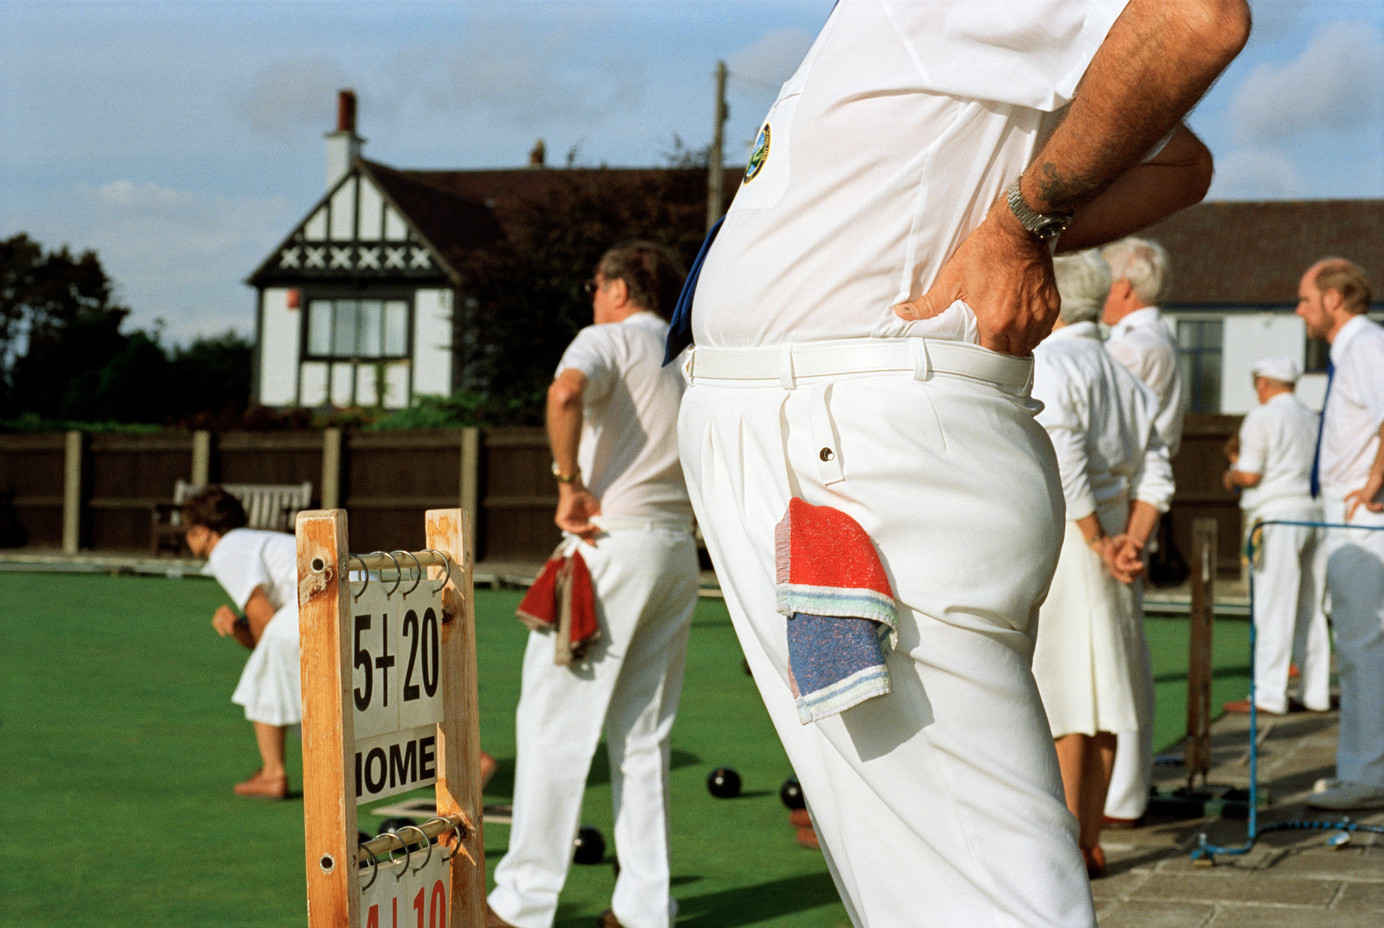 Martin Parr | Think of England